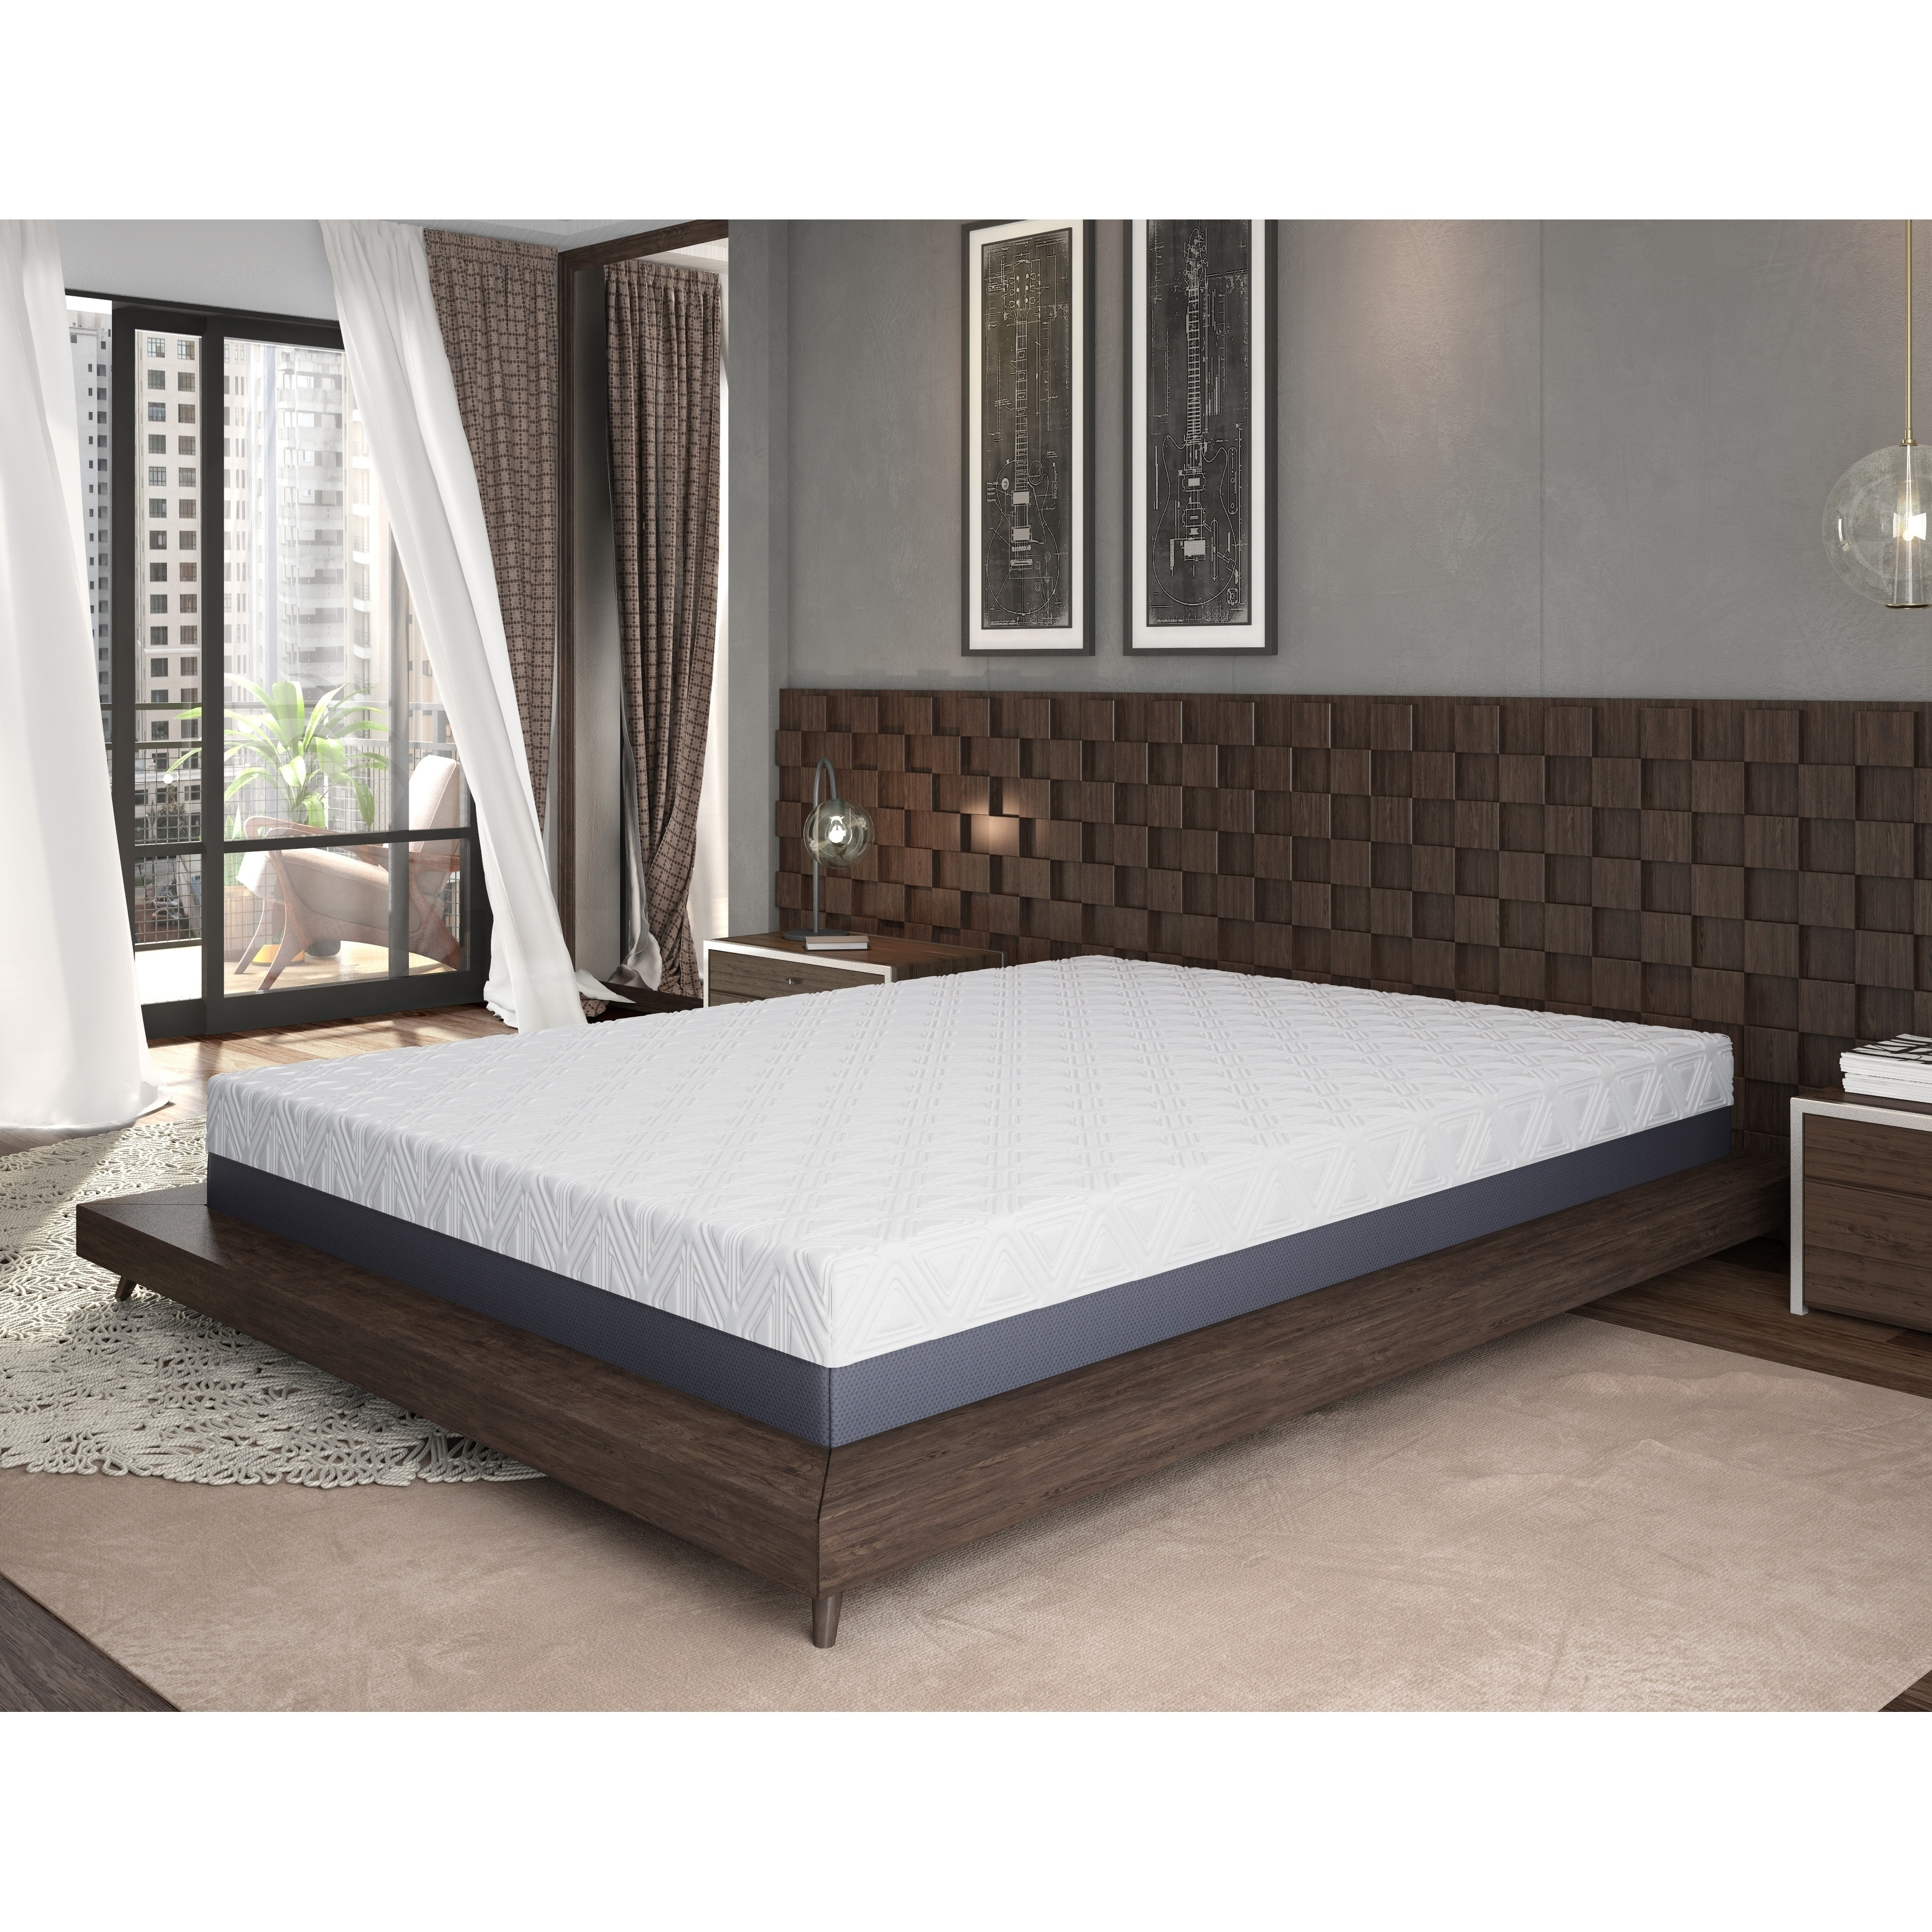 Omne Sleep 10 Inch Twin Size Gel Memory Foam Mattress Ebay